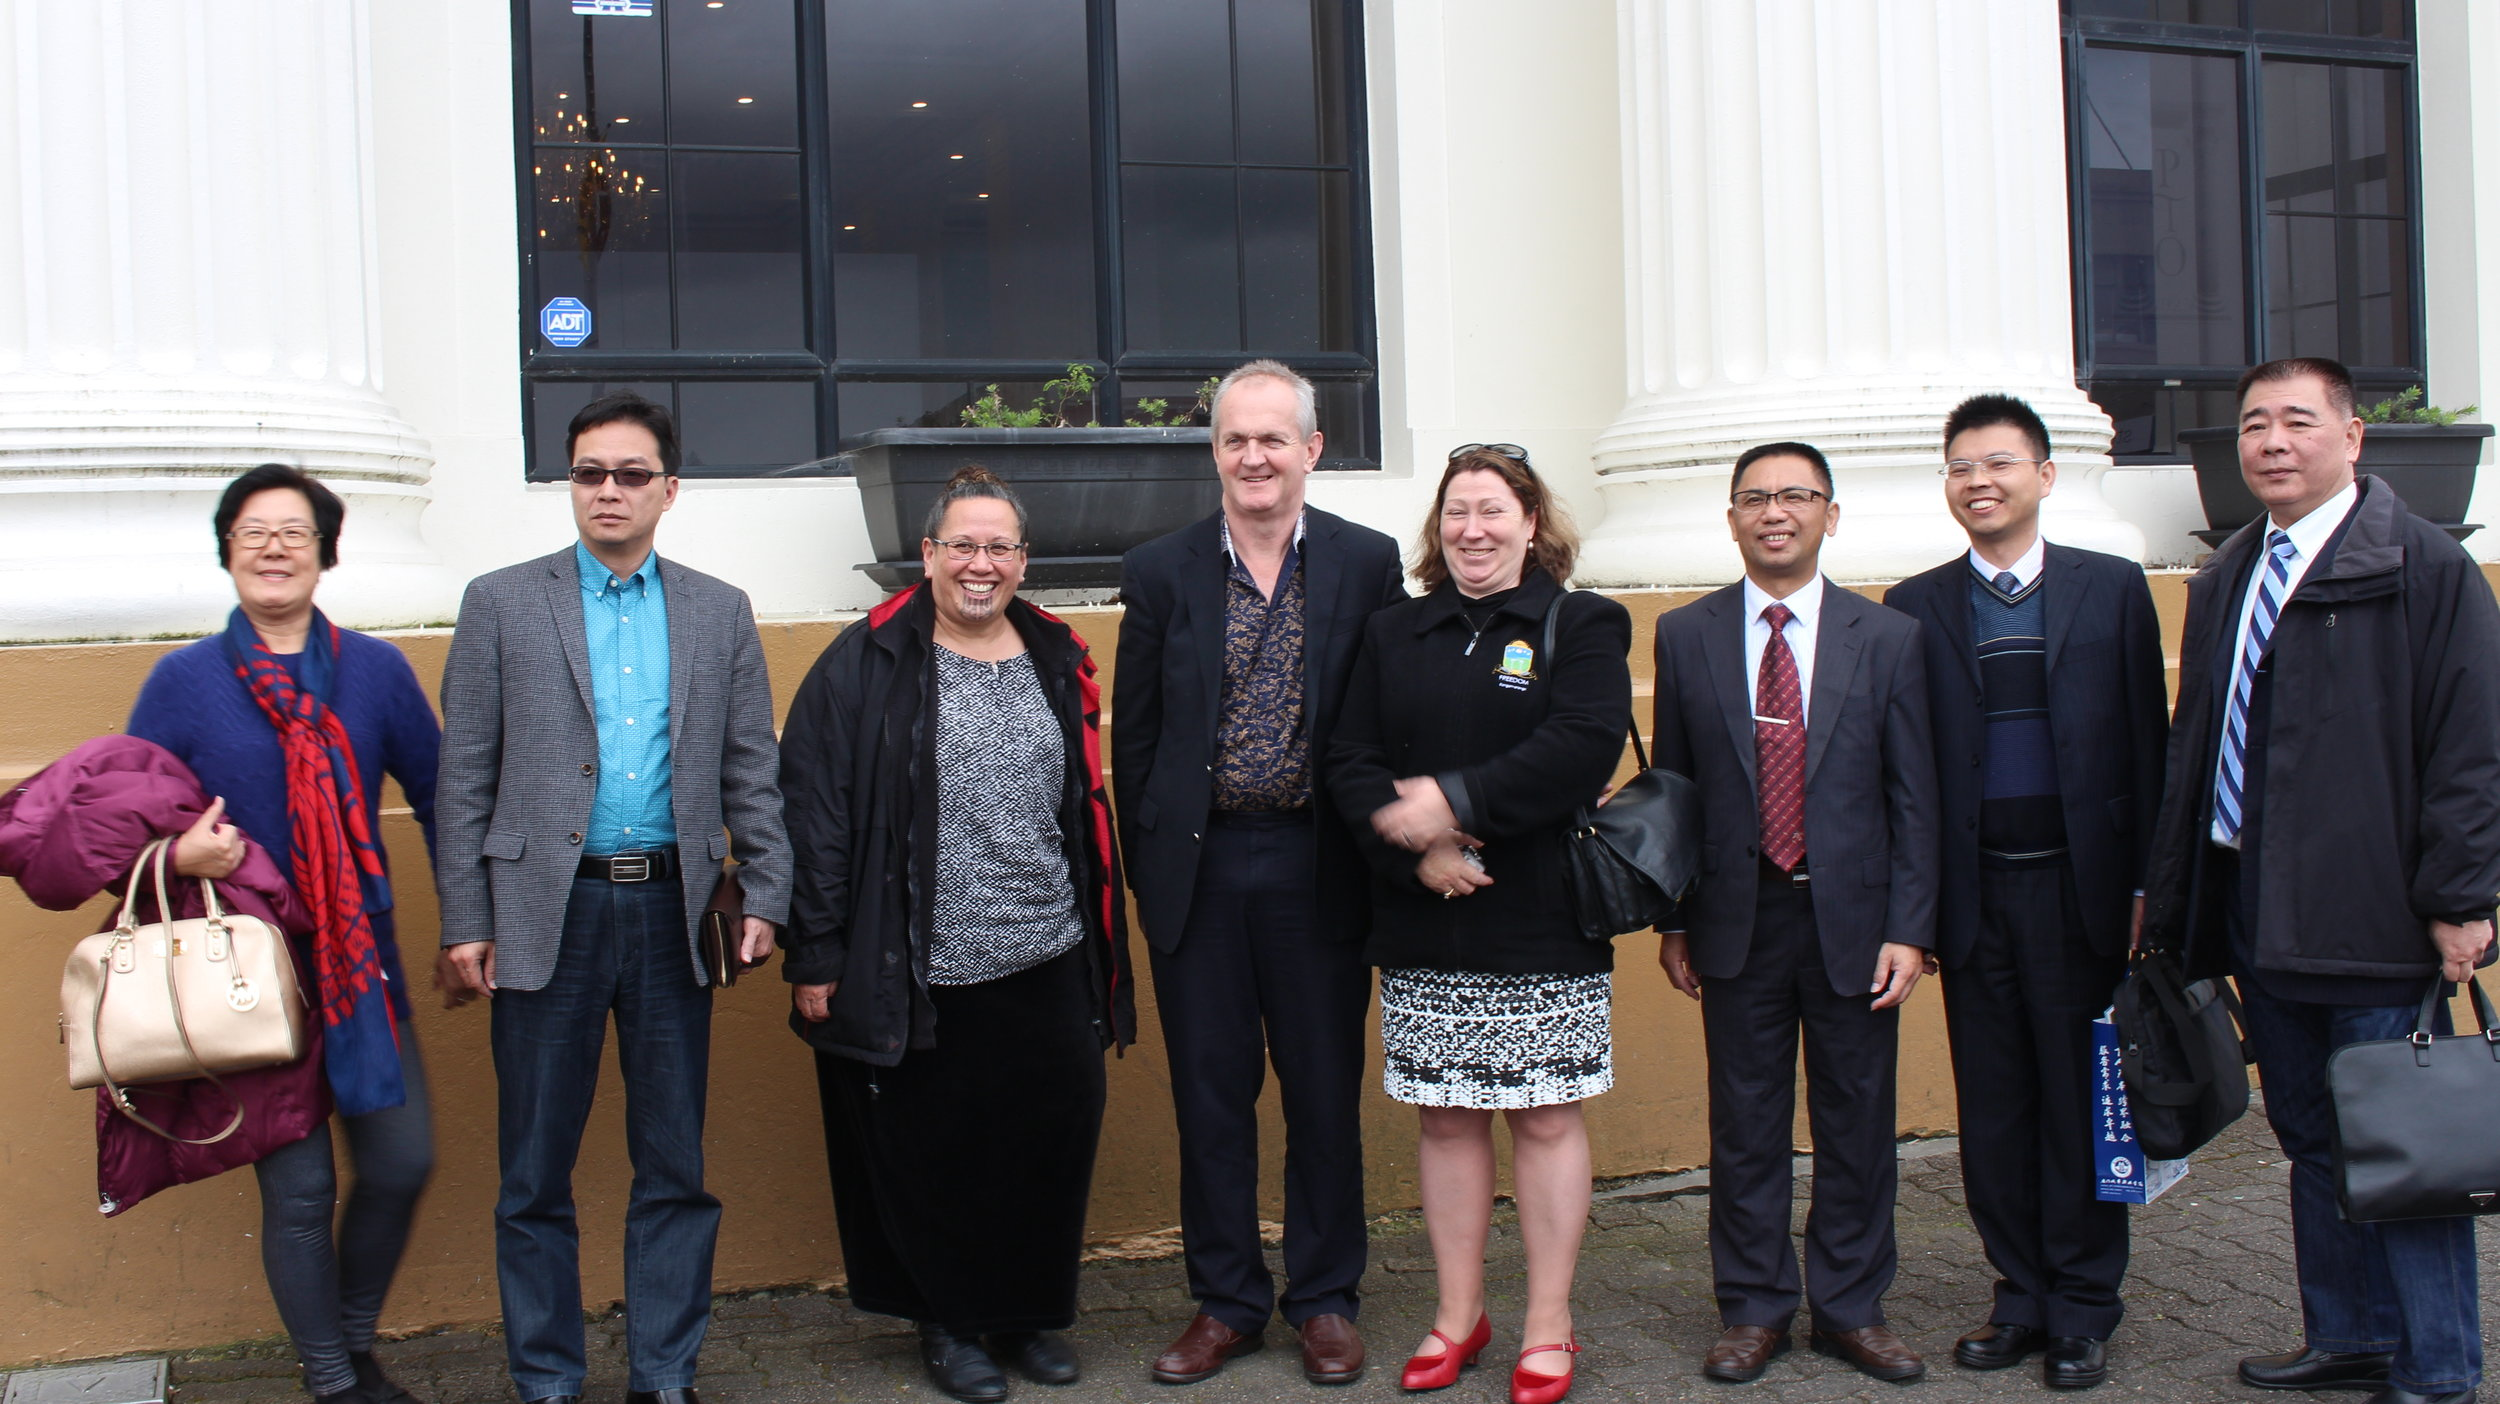 Mrs Wang and Fulong Wang, Learner Services Manager Maraea Cossey, FREEDOM Presidents Graeme and Susan Stevenson, Chao Lv, Wenlong Huang and Chunsong Huang outside their restored Public Trust Office with four of the Xiamen City University Presidents and a faculty member.